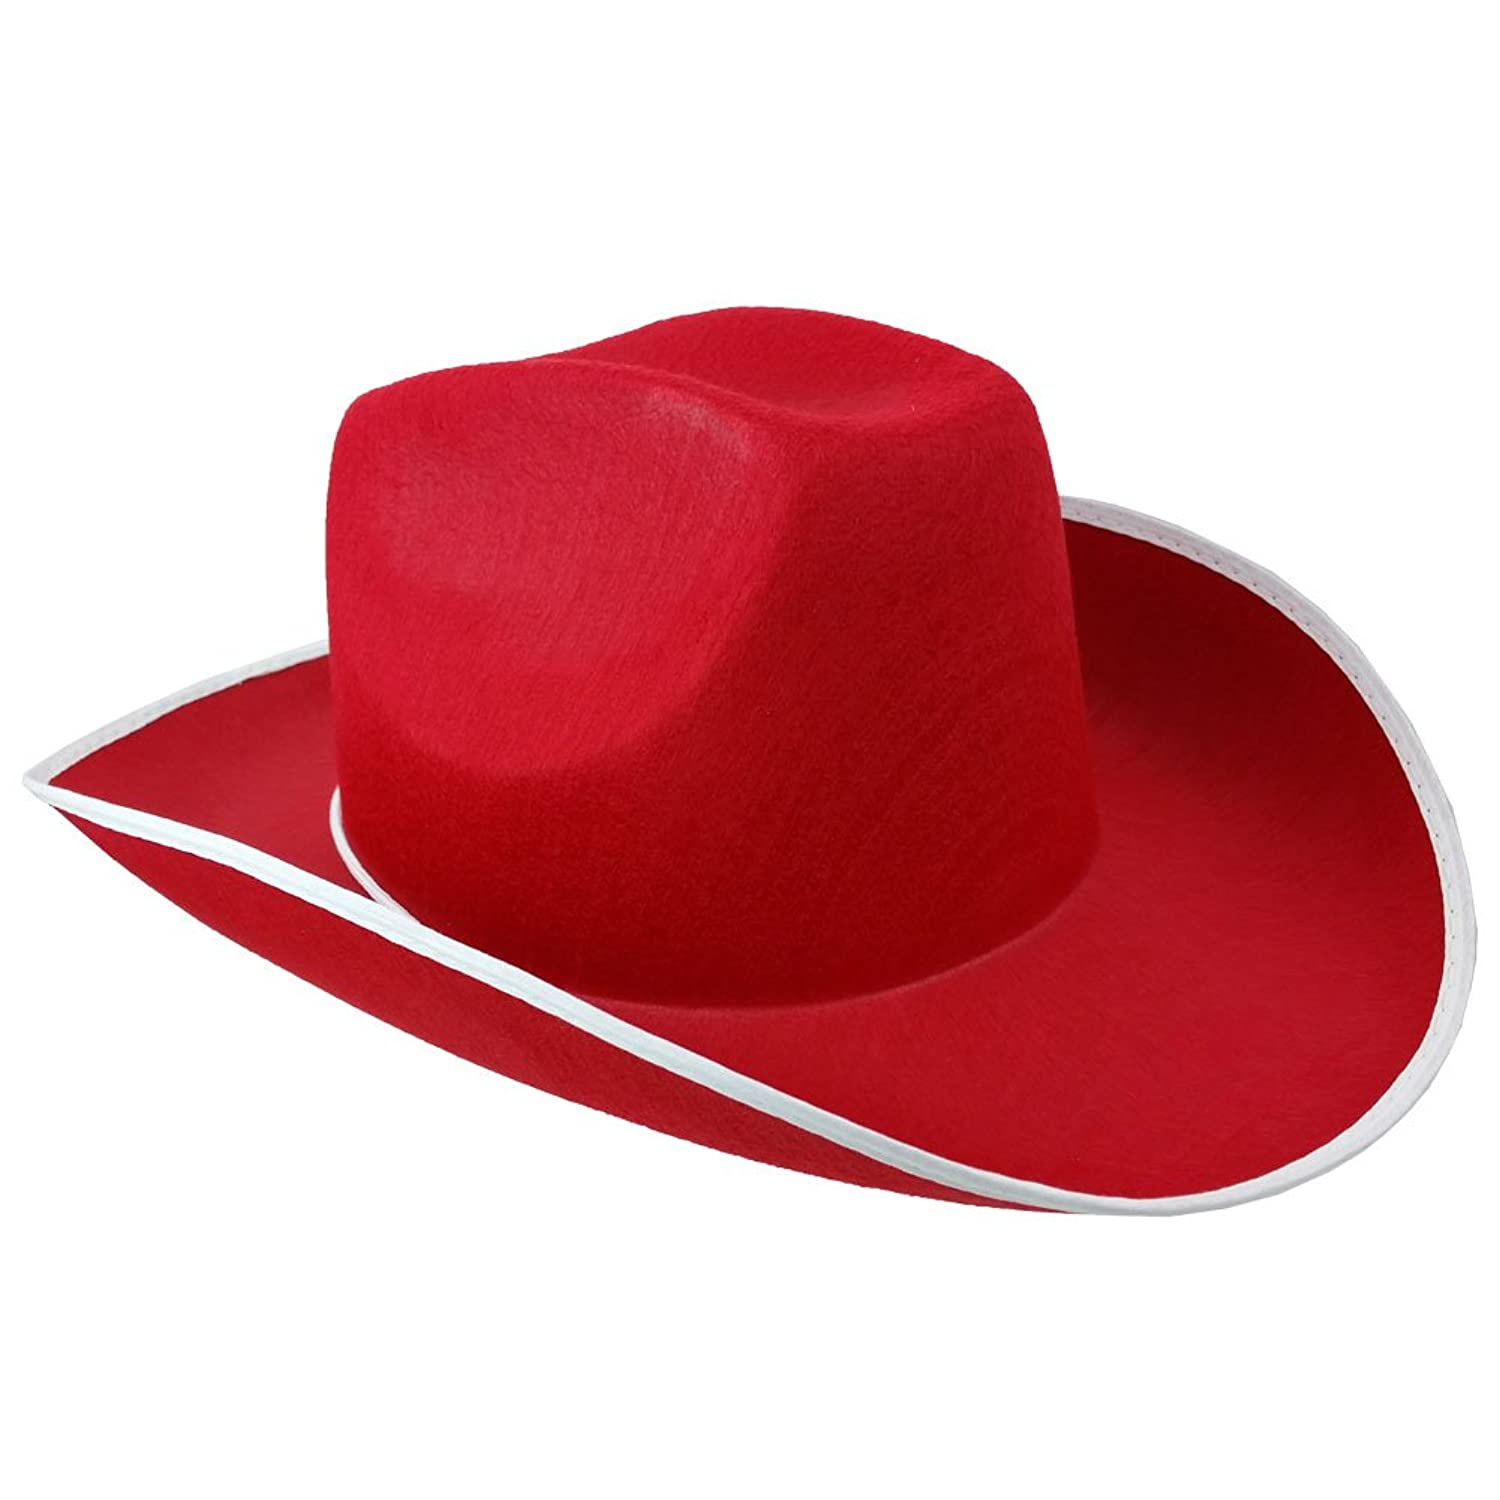 9ea0e4f8be4 Cowboy Hats Red Adult Unisex Cowgirl Costume Role Play Hat